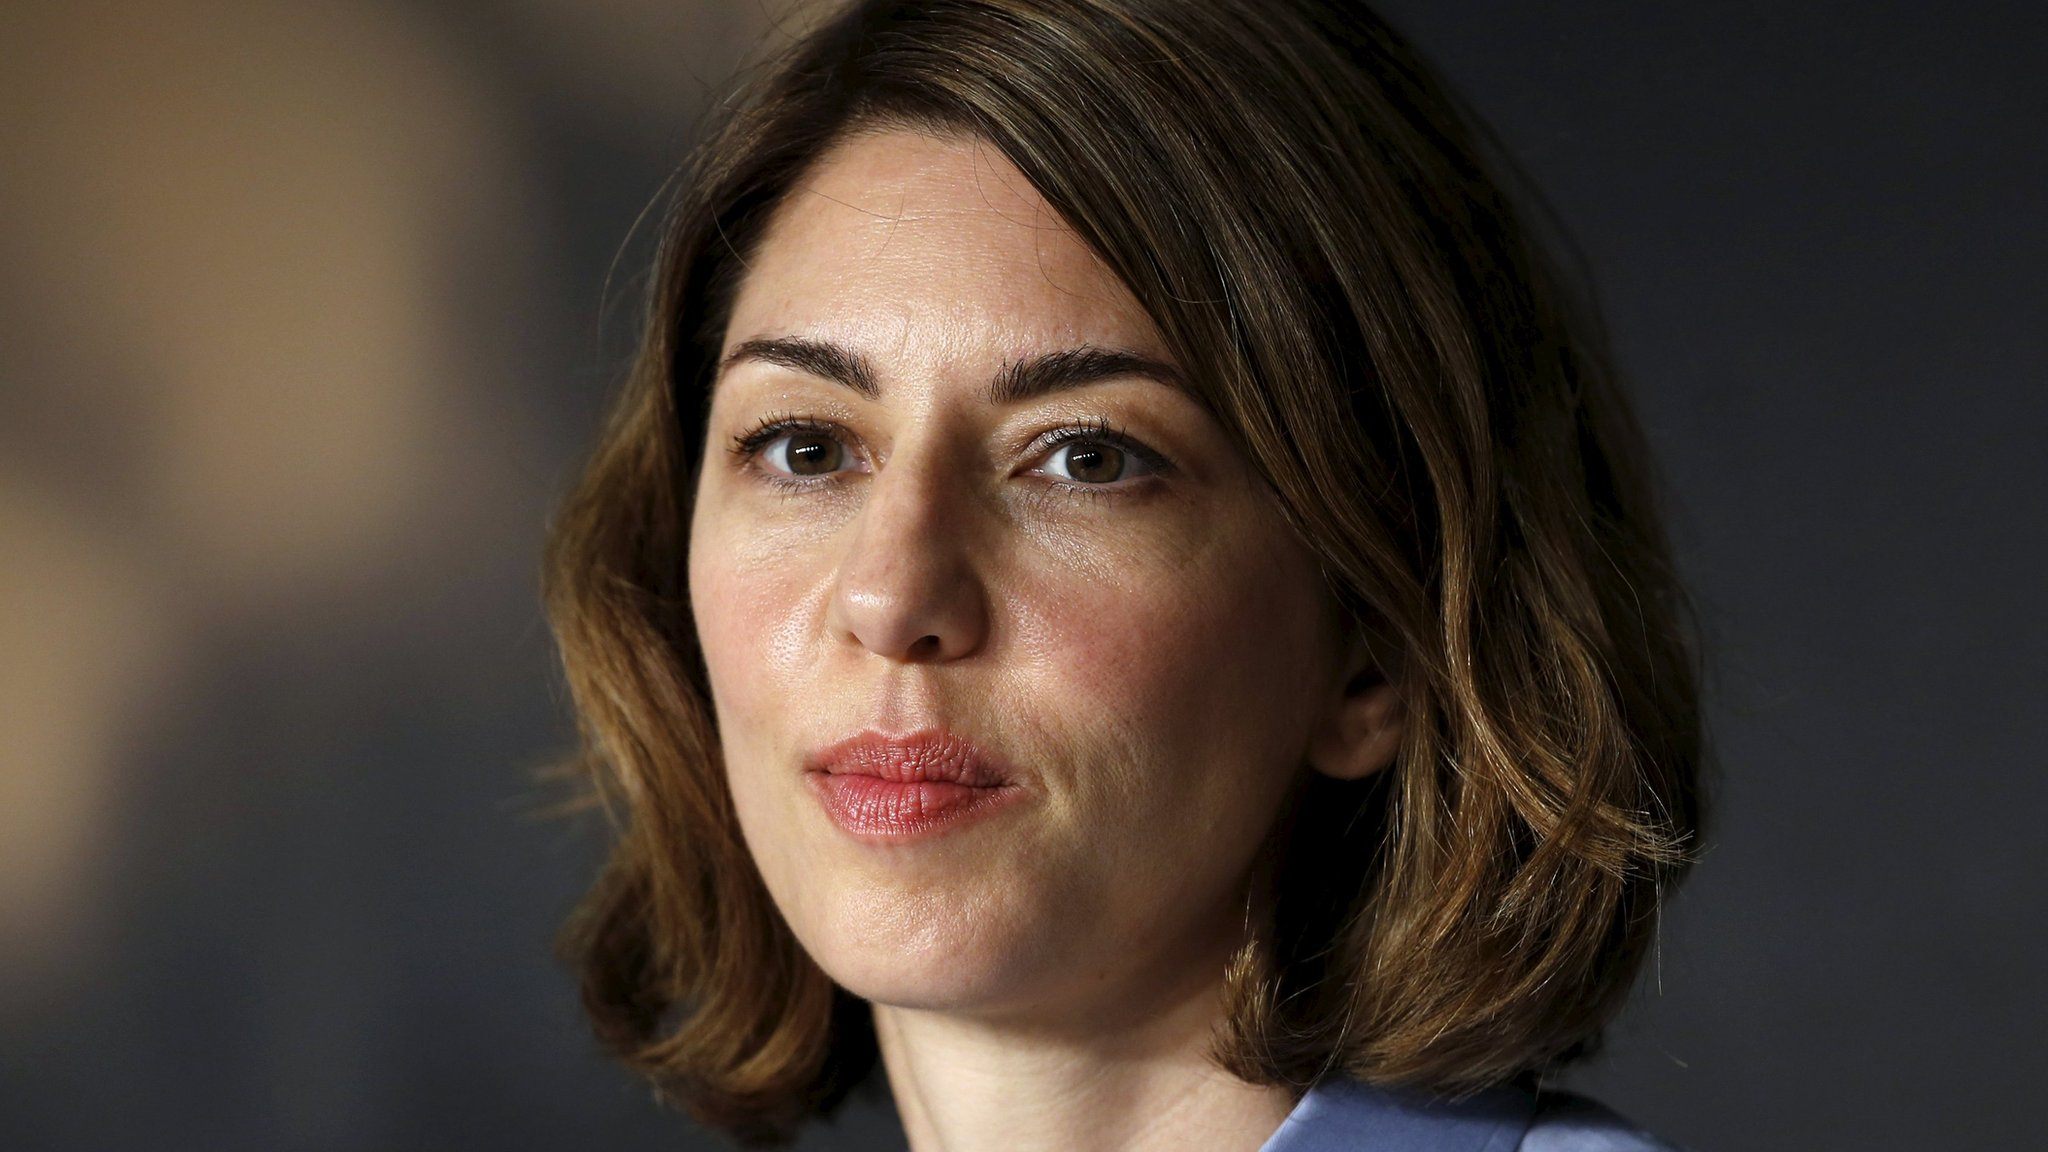 Sofia Coppola to make Rome opera debut